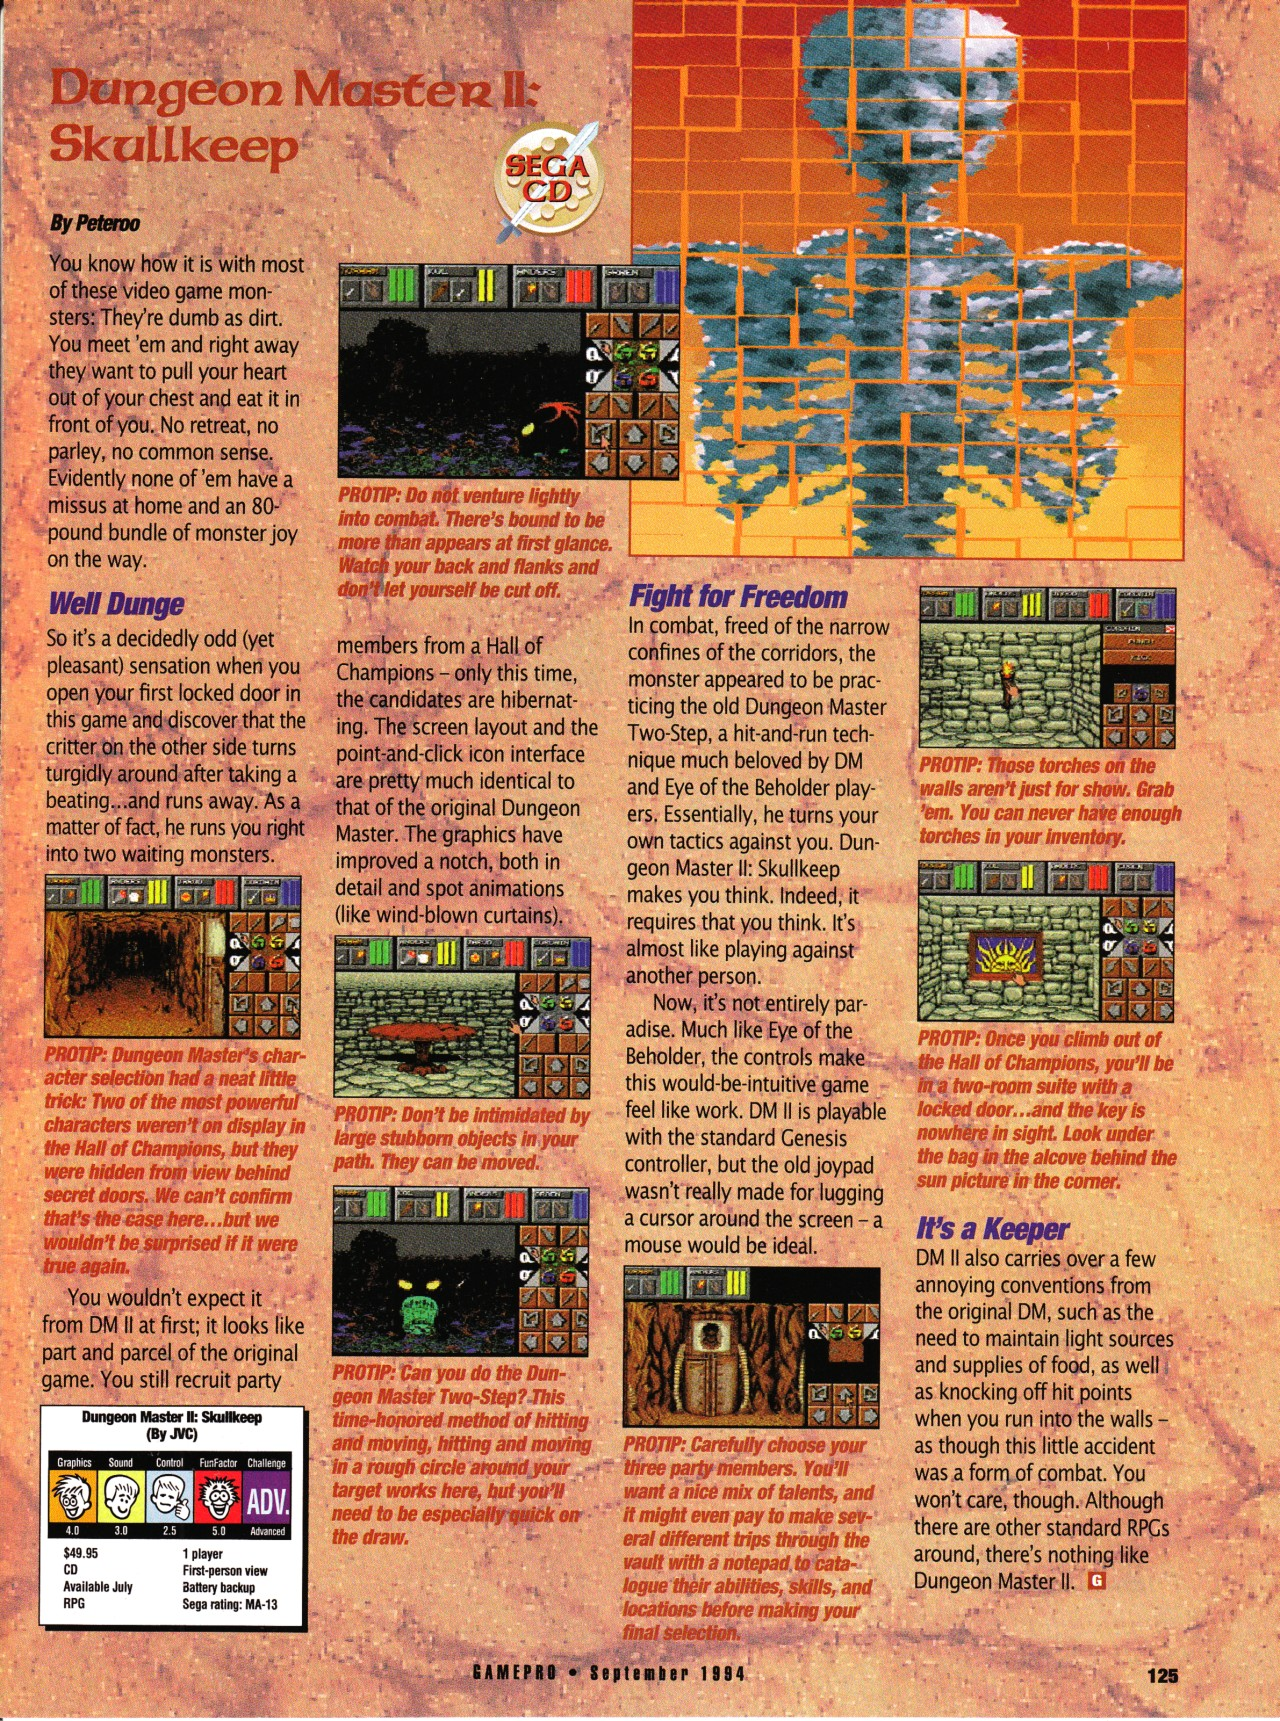 Dungeon Master II for Sega CD Review published in American magazine 'GamePro', Vol 6 No 9 September 1994, Page 125